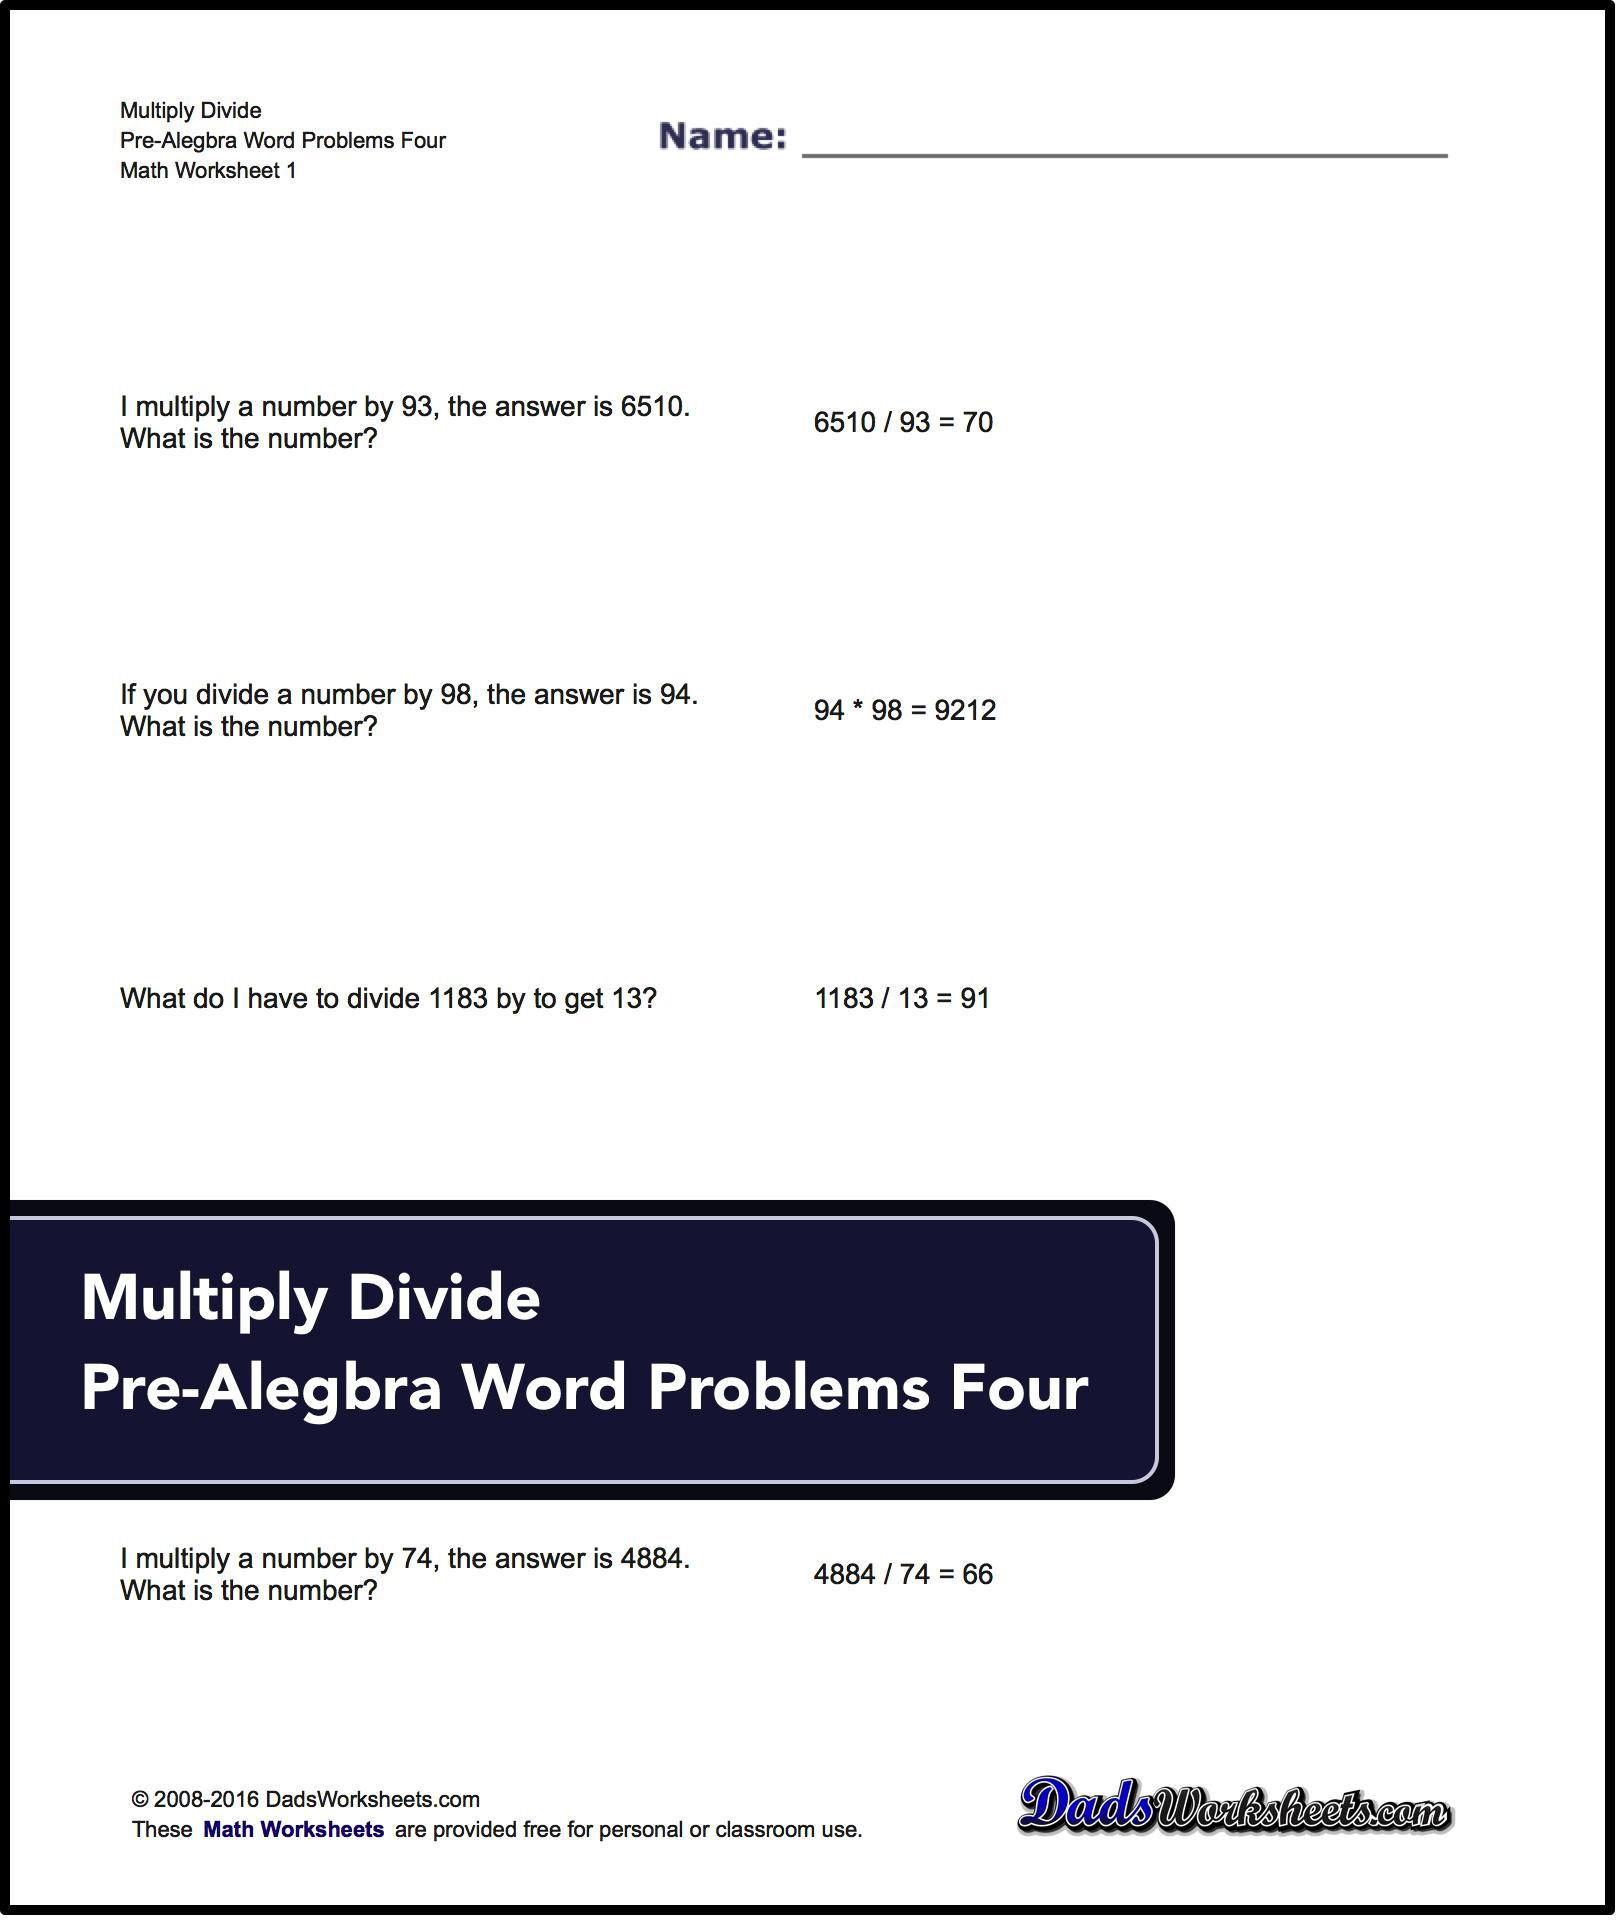 Multiply And Divide Pre Algebra Word Problems Multiply